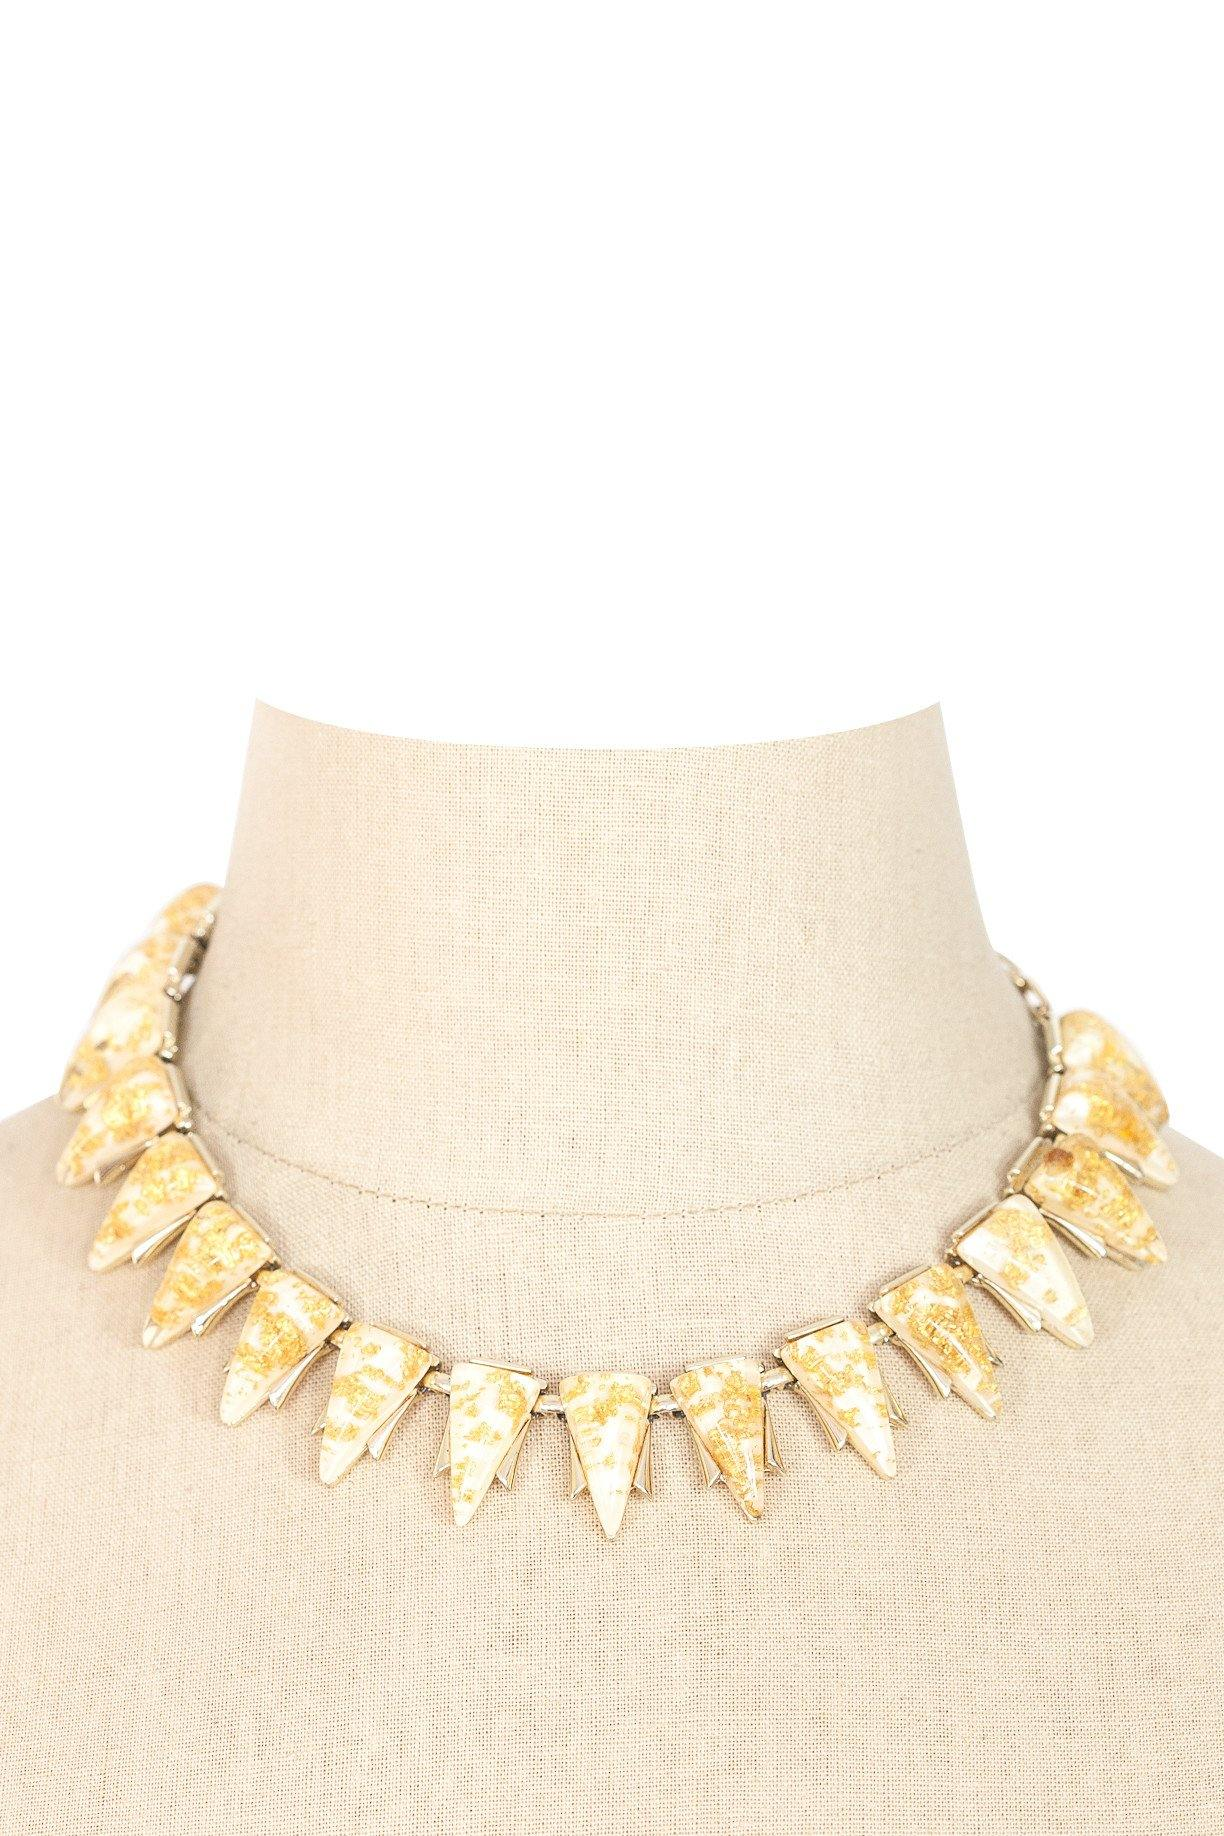 60's__Coro__Lucite Gold Foil Necklace